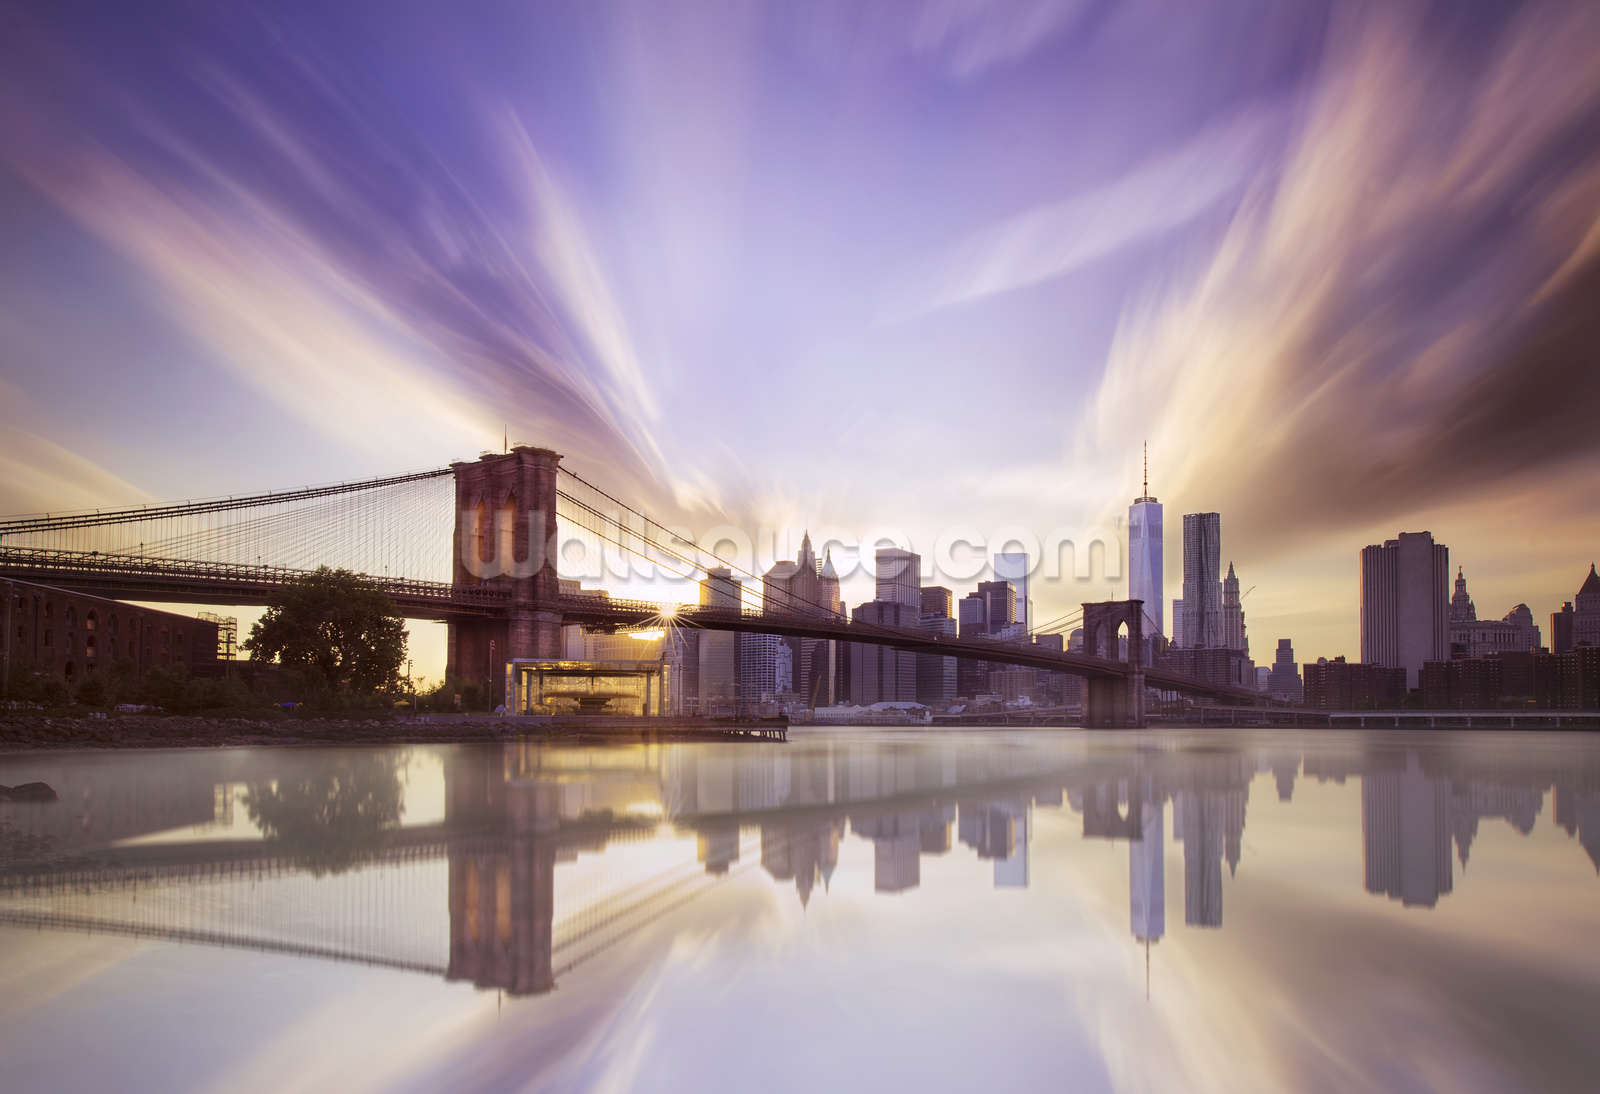 Brooklyn Bridge Wallpaper Mural Of Brooklyn Bridge Sunset Wallpaper Wall Mural Wallsauce Usa